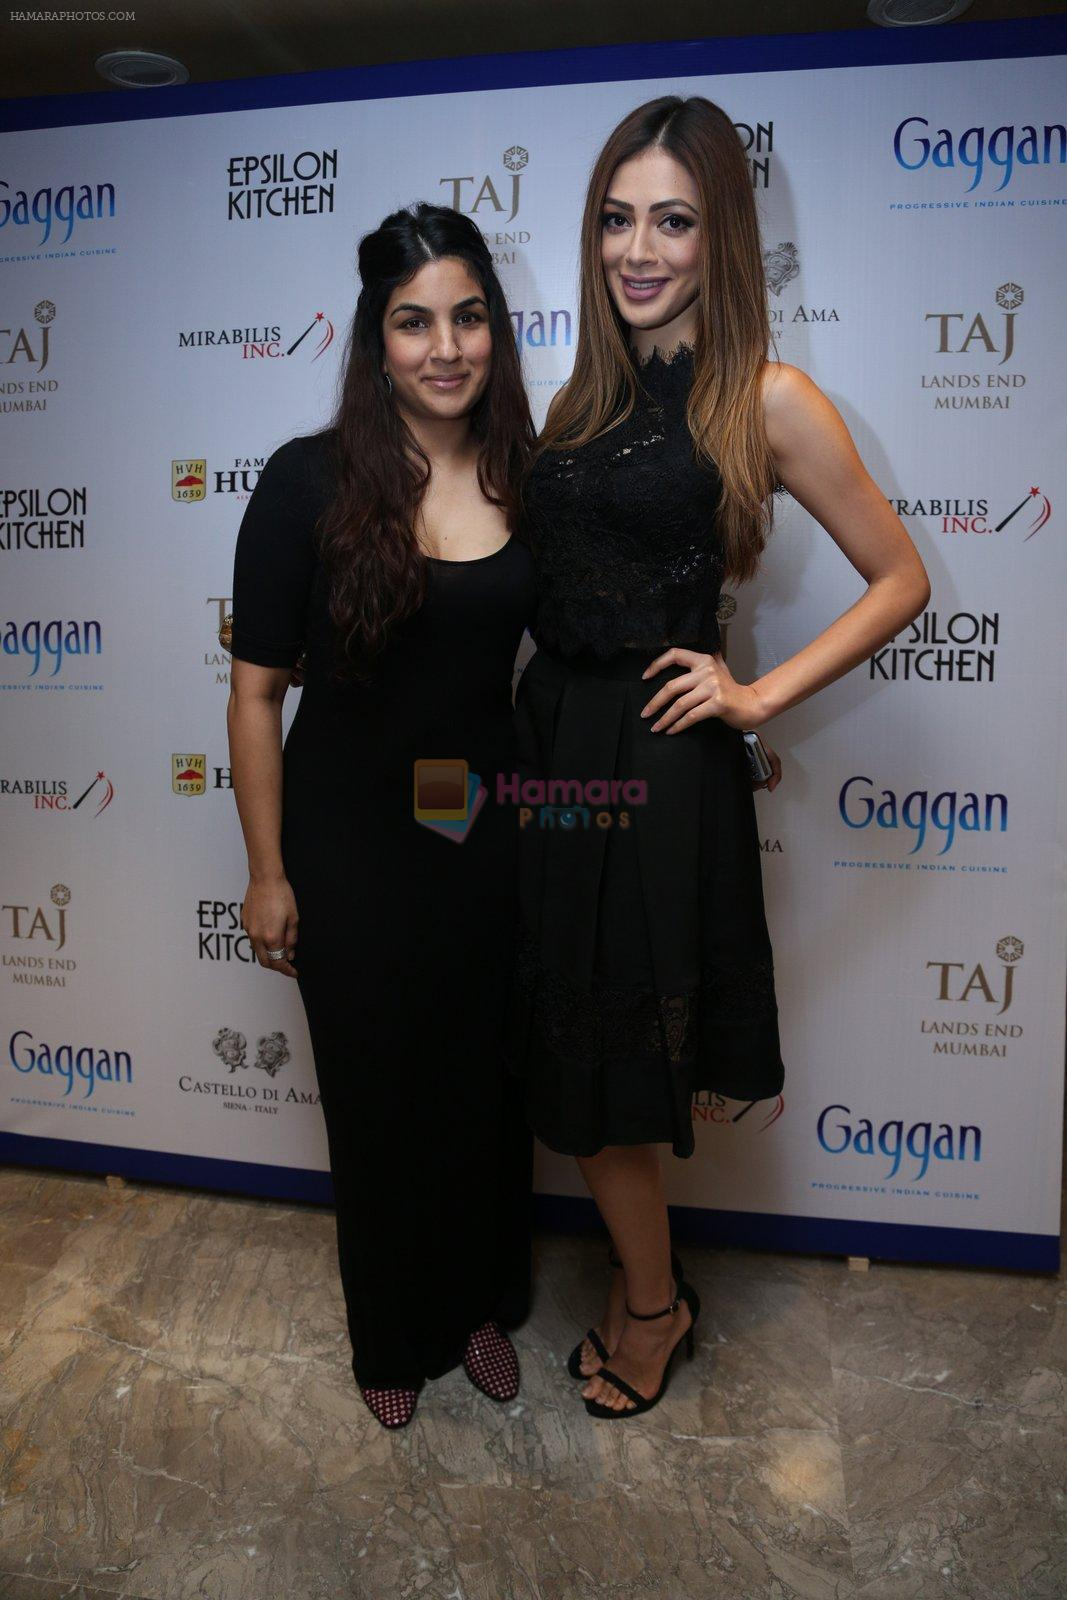 at Chef Gaggan's foodie event on 2nd Sept 2016